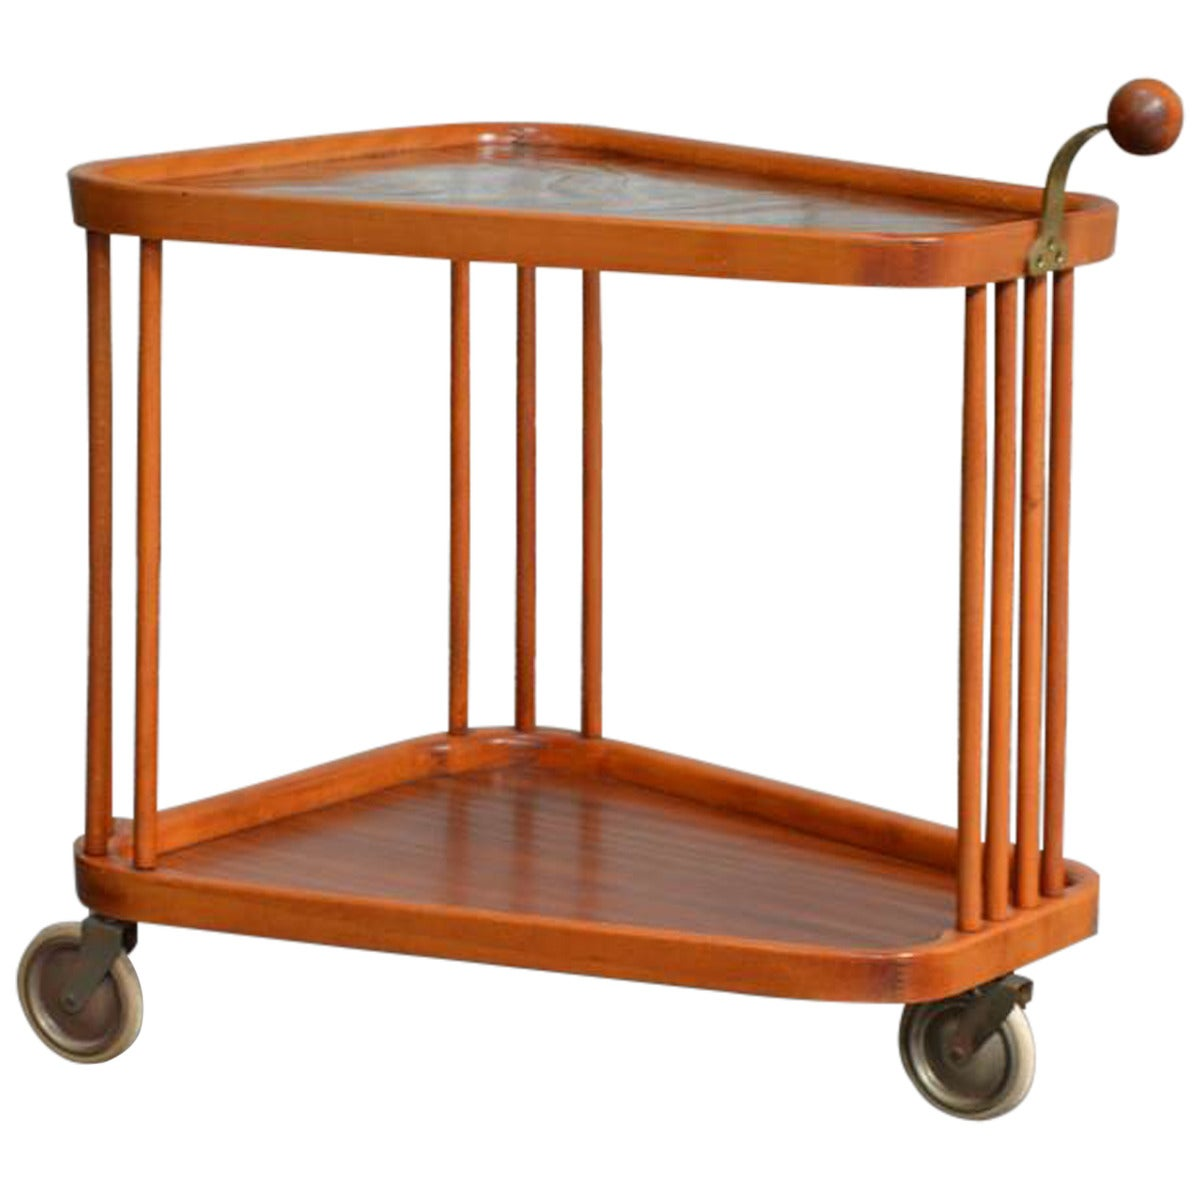 Swedish Art Deco Bar Cart by Axel Larsson for Bodafors